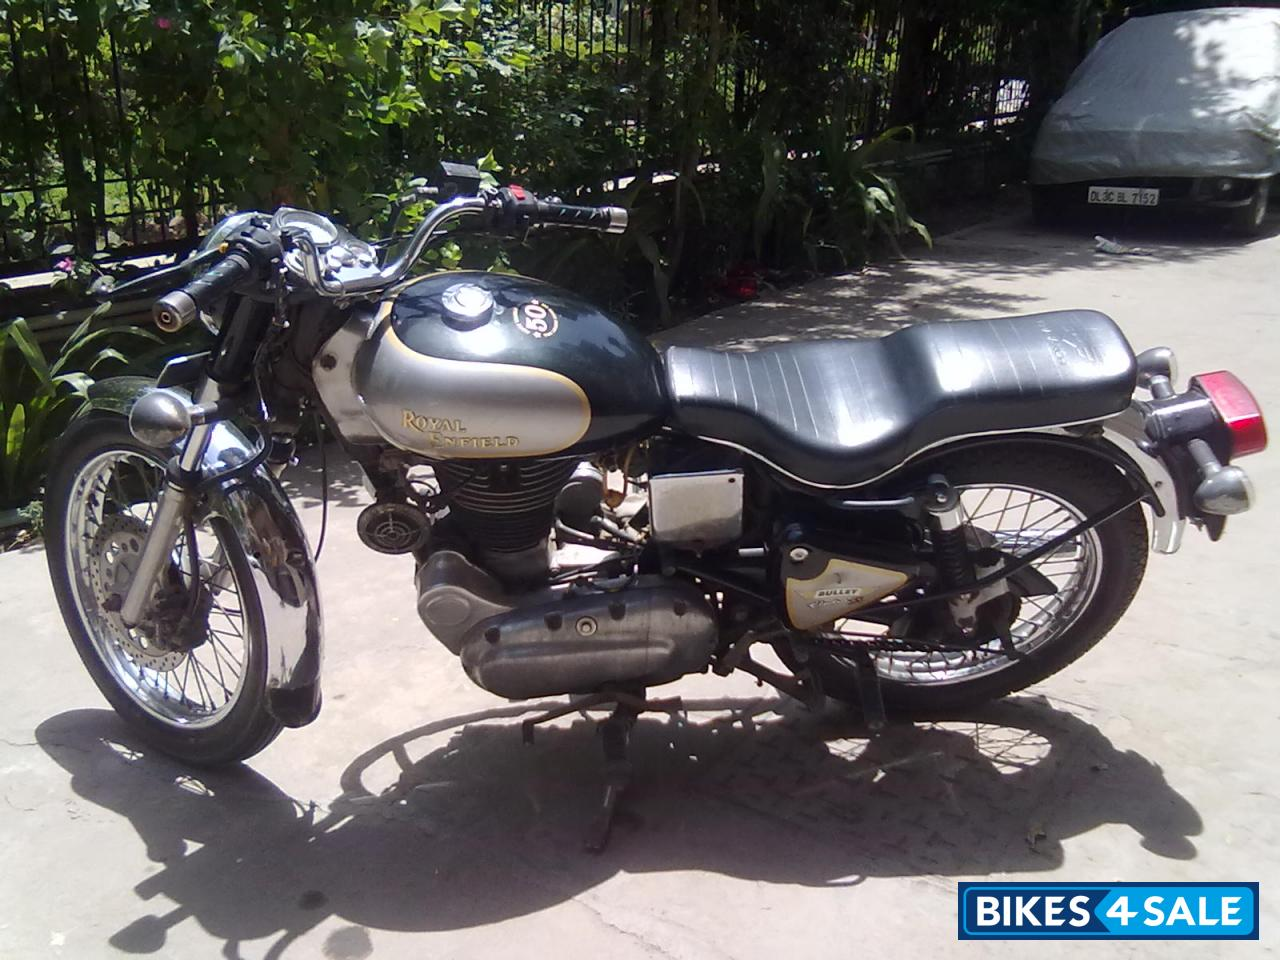 New Bullet Bike Photos Royal Enfield Bullet Electra